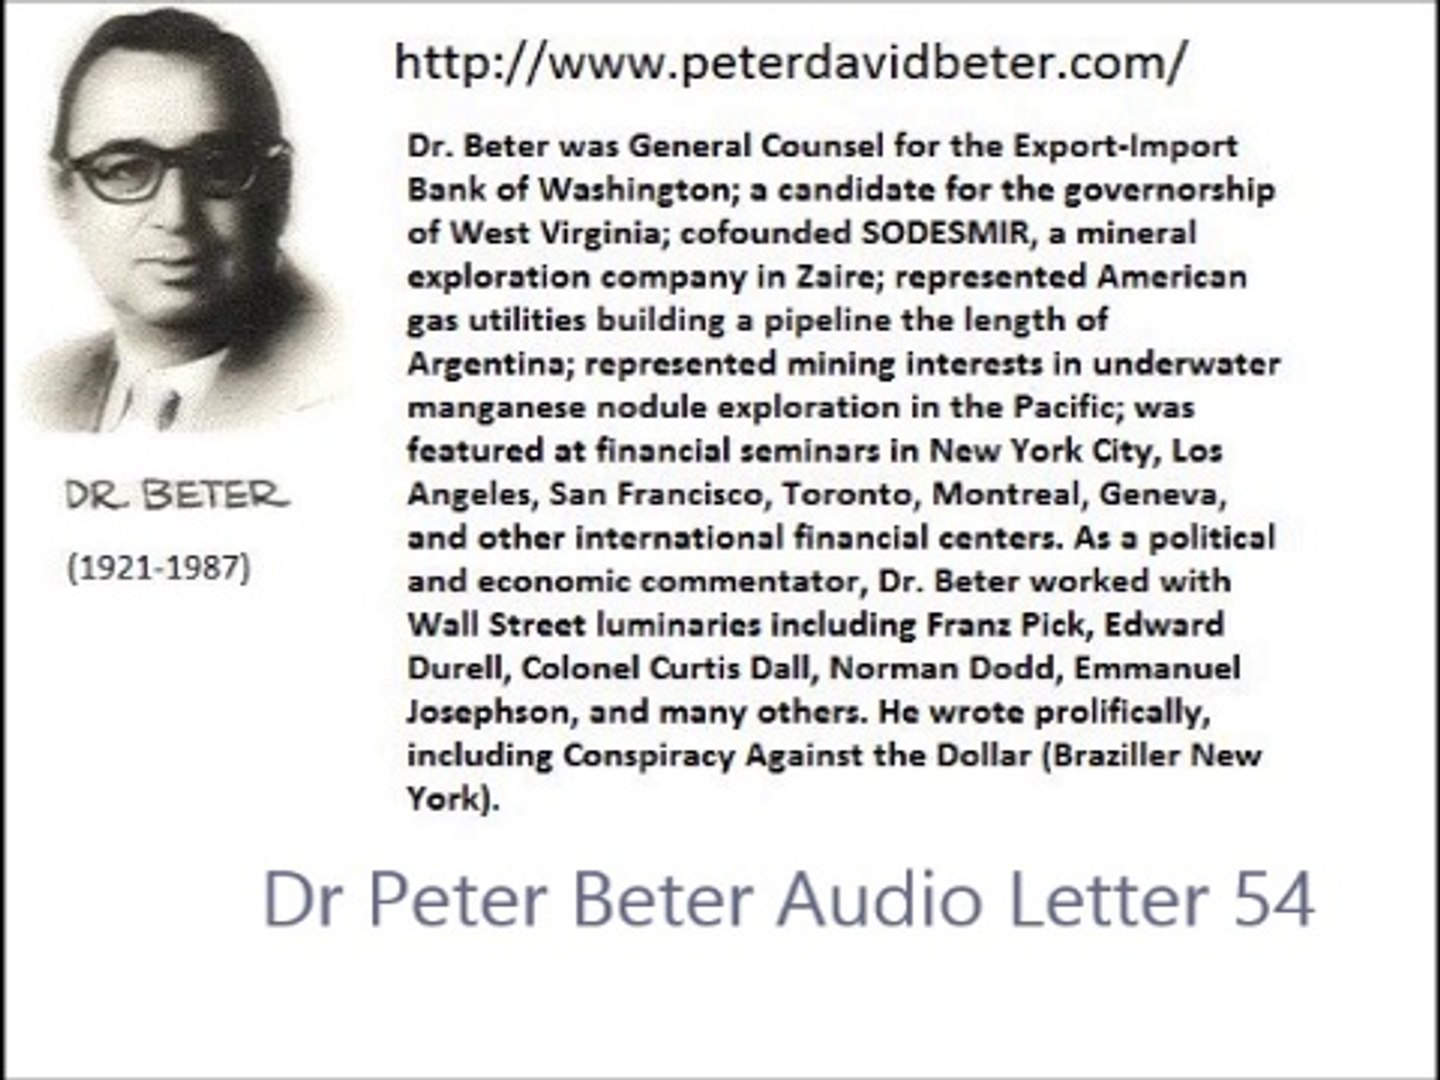 Dr Peter Beter Audio Letter 54 - February 24, 1980 - The Secret American Defeat of January, 1980; Weather Modification As a Weapon of Retaliation; Russia's Accelerating Preparations to Survive Nuclear War